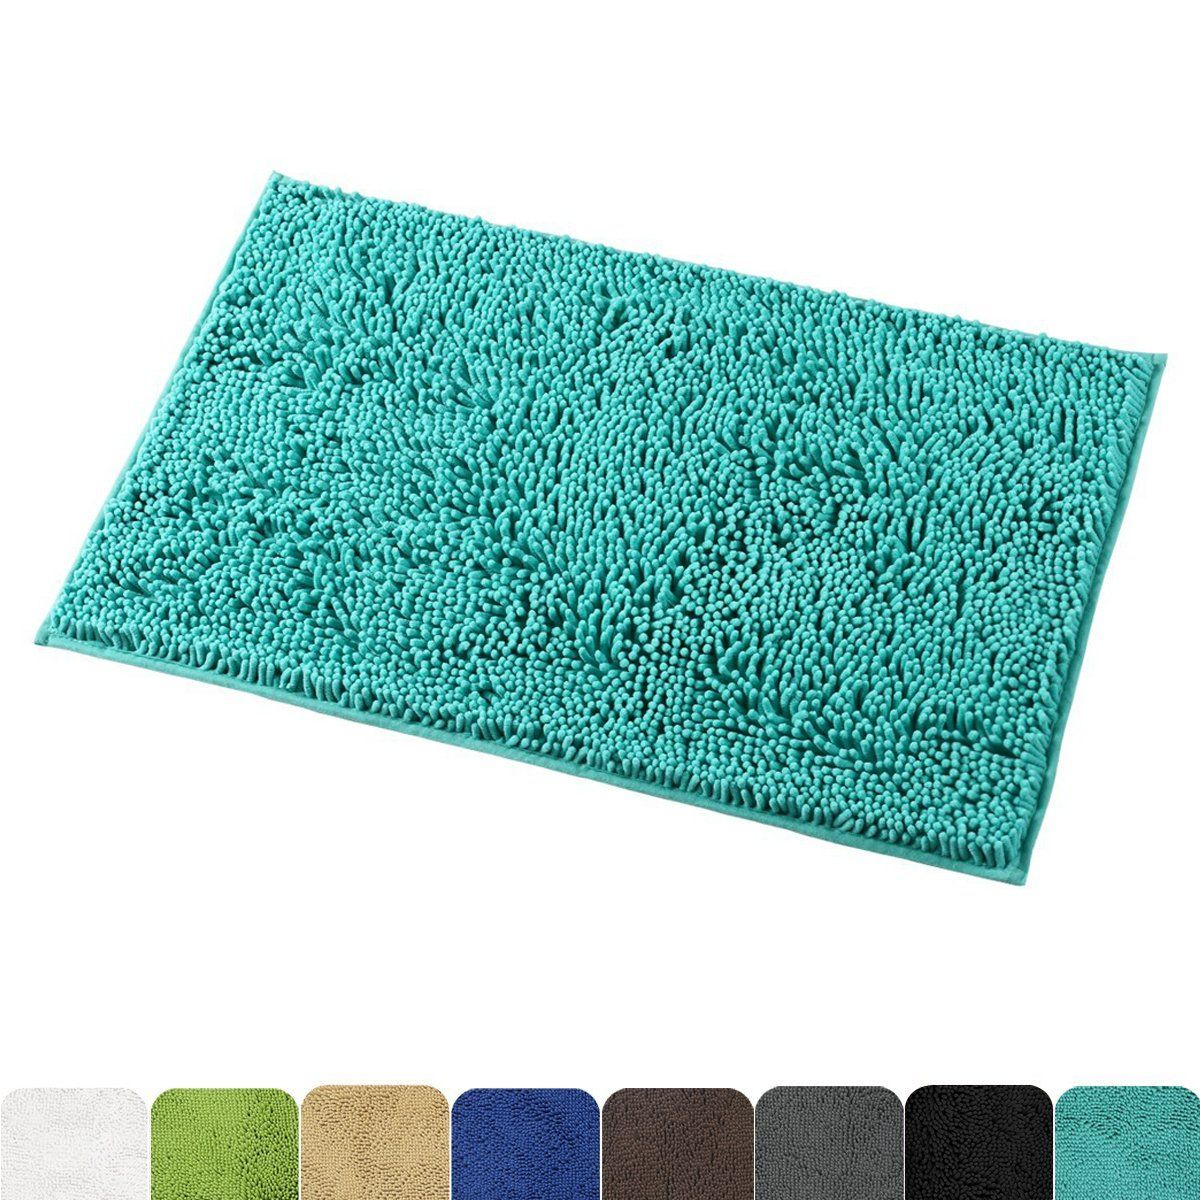 Mayshine Nonslip Bathroom Rug Shag Shower Mat Machinewashable Bath Mats With Water Absorbent Soft Microfibers 20 W X Washable Bath Mat Bathroom Rugs Shower Mat